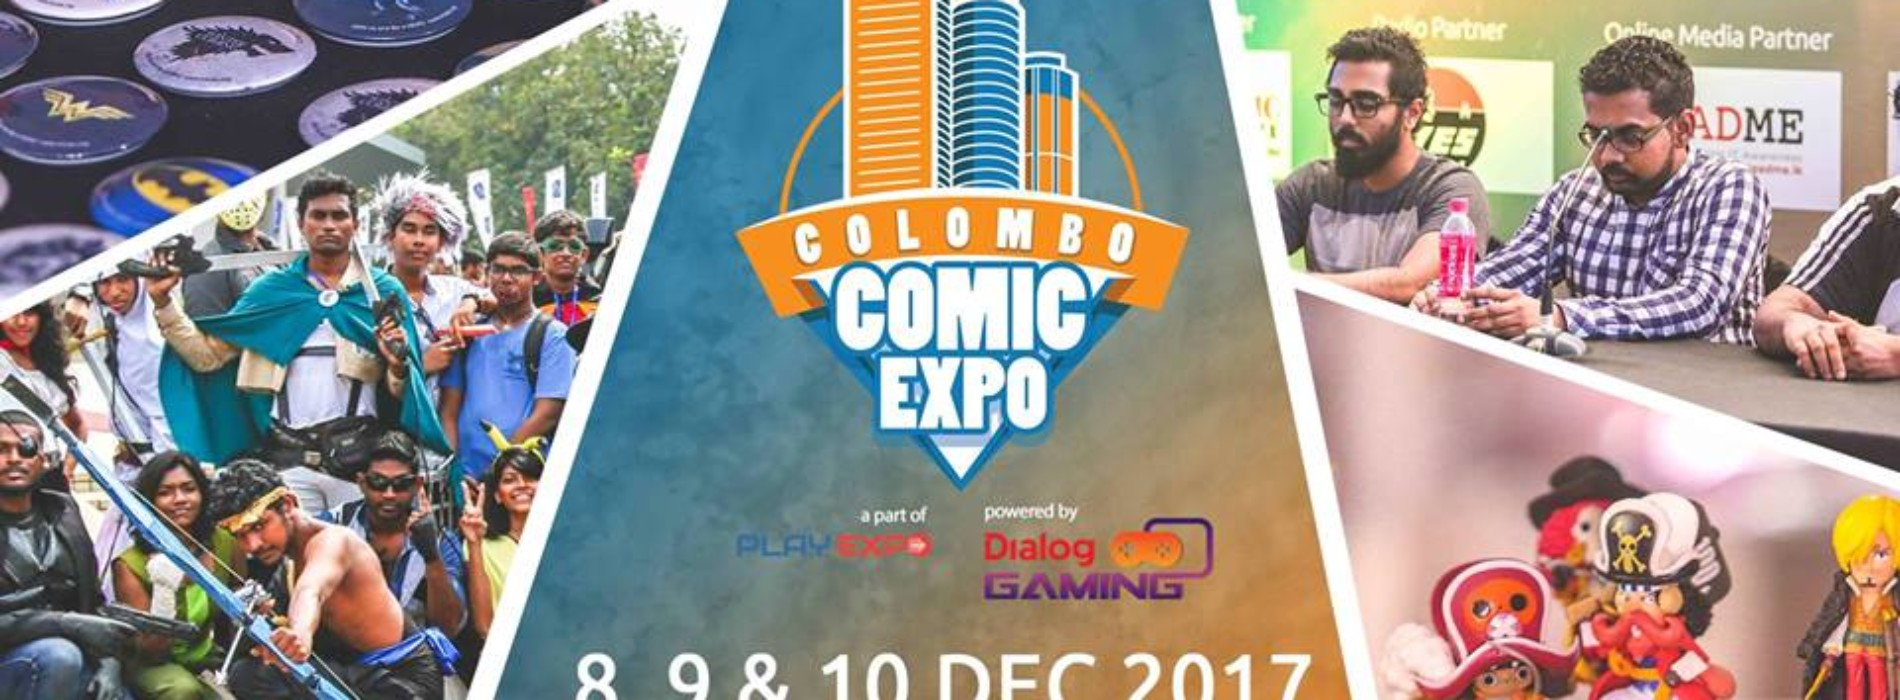 Colombo Comic Expo '17